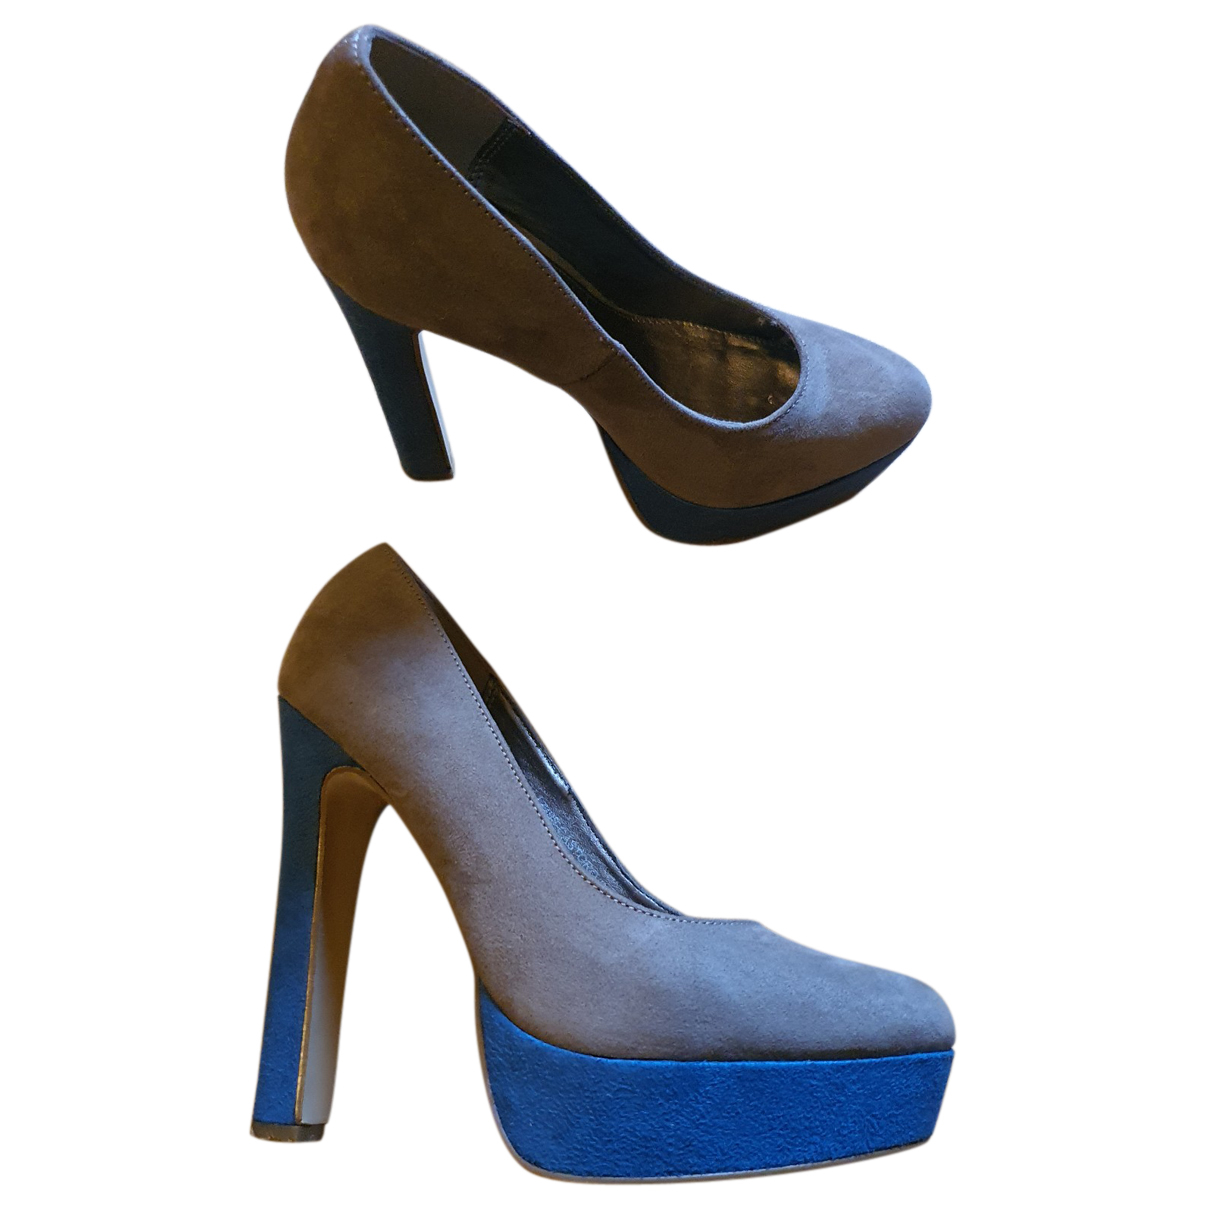 Silvian Heach \N Pumps in  Bunt Veloursleder